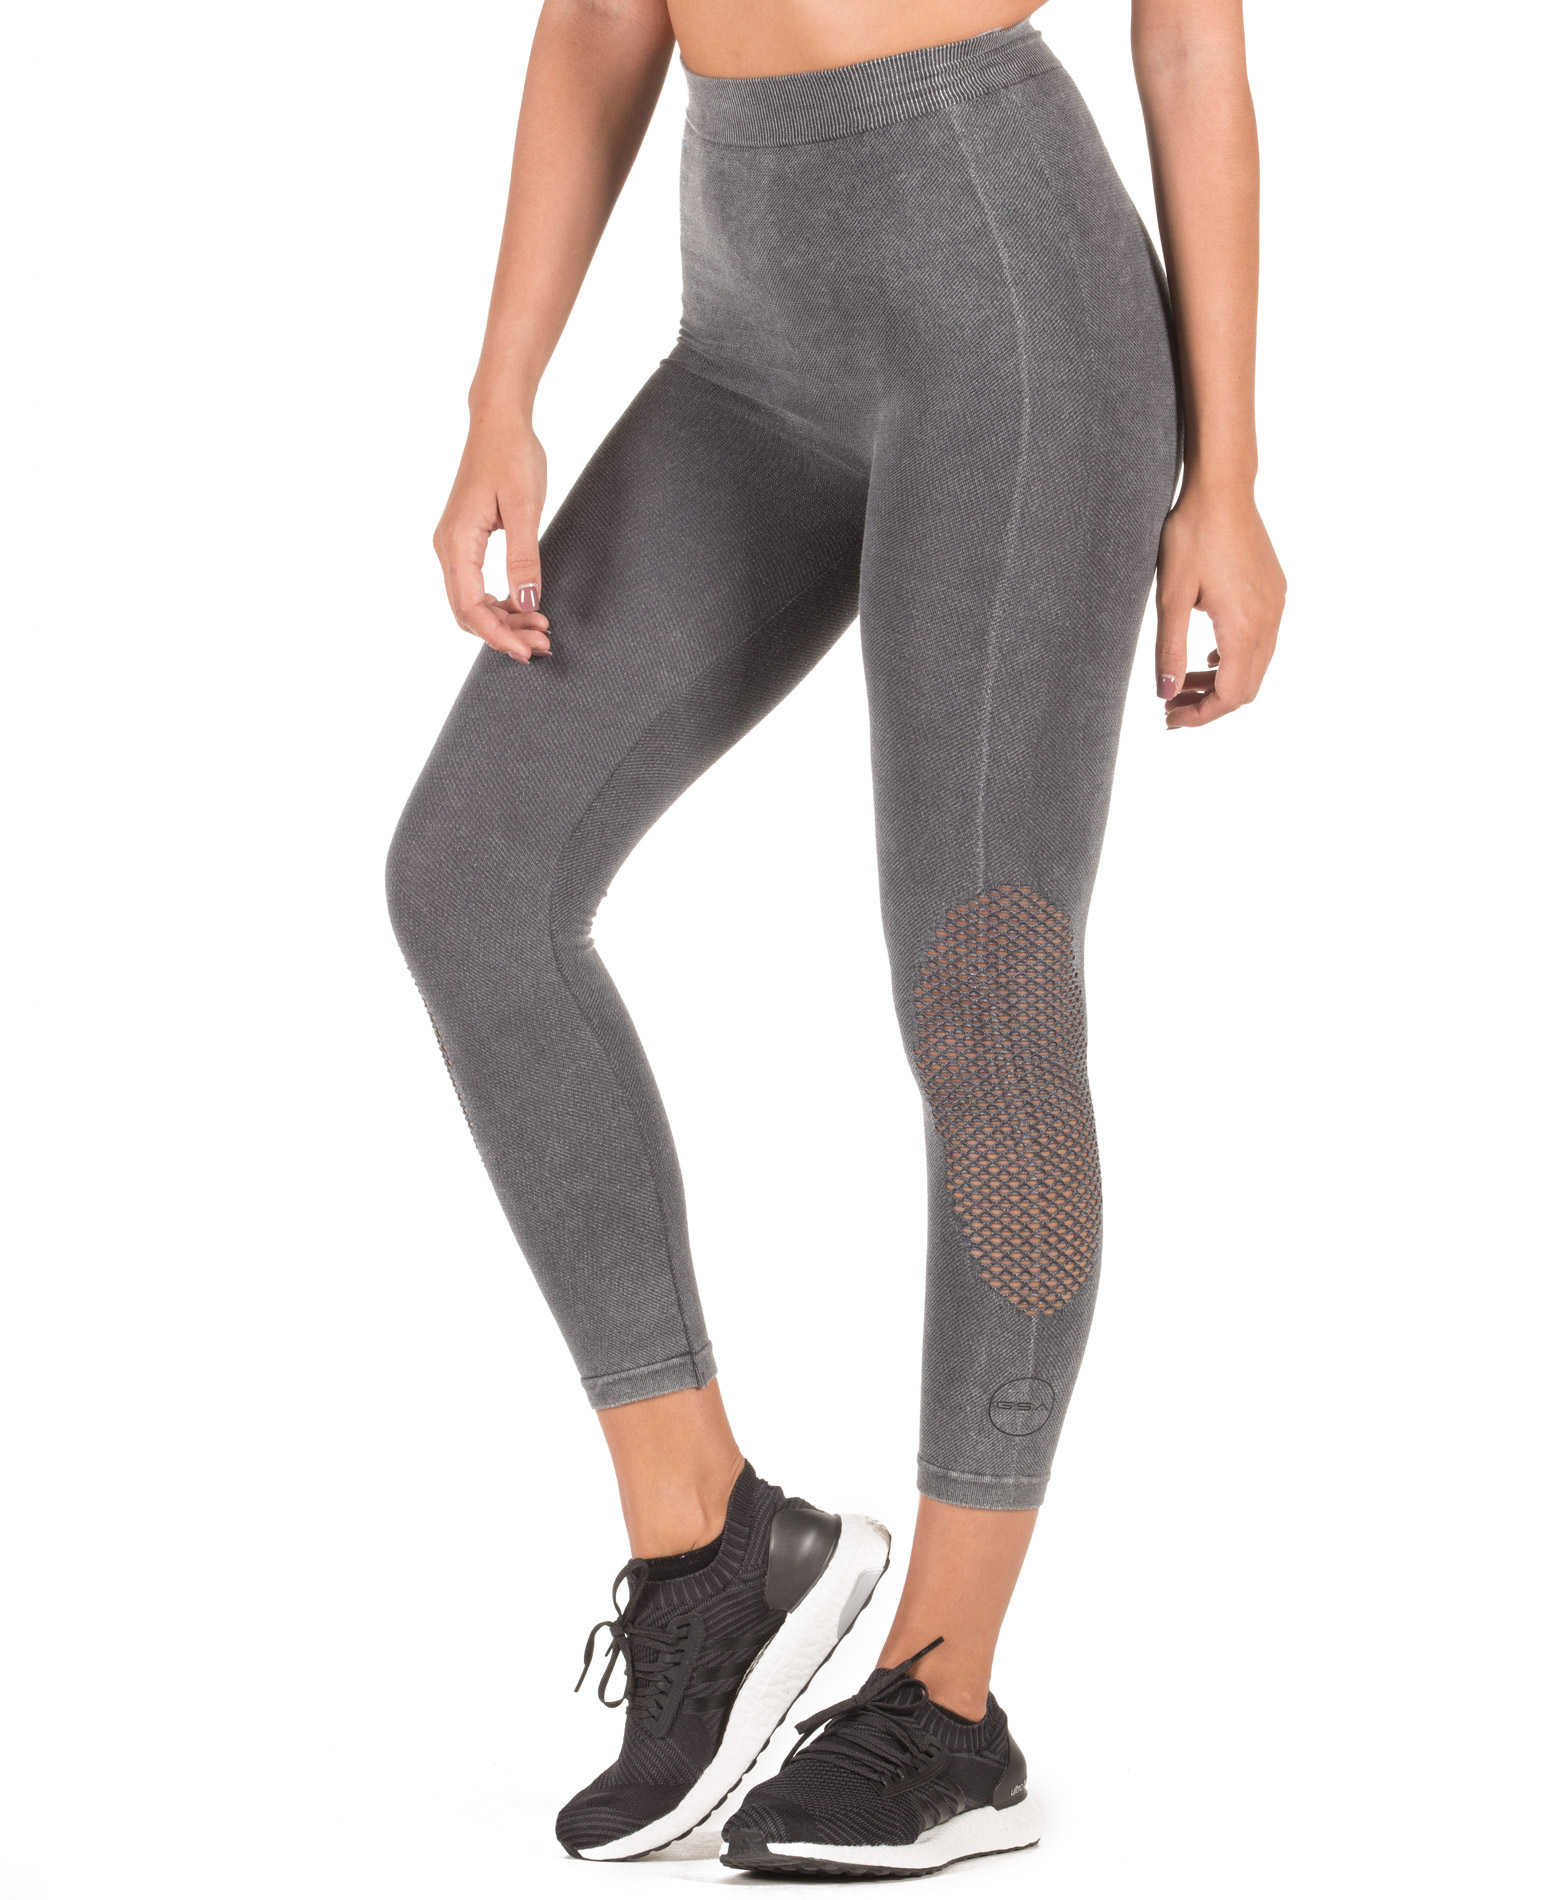 GSA HYDRO SEAMLESS LEGGINGS 17-28129-06 CHARCOAL Ανθρακί